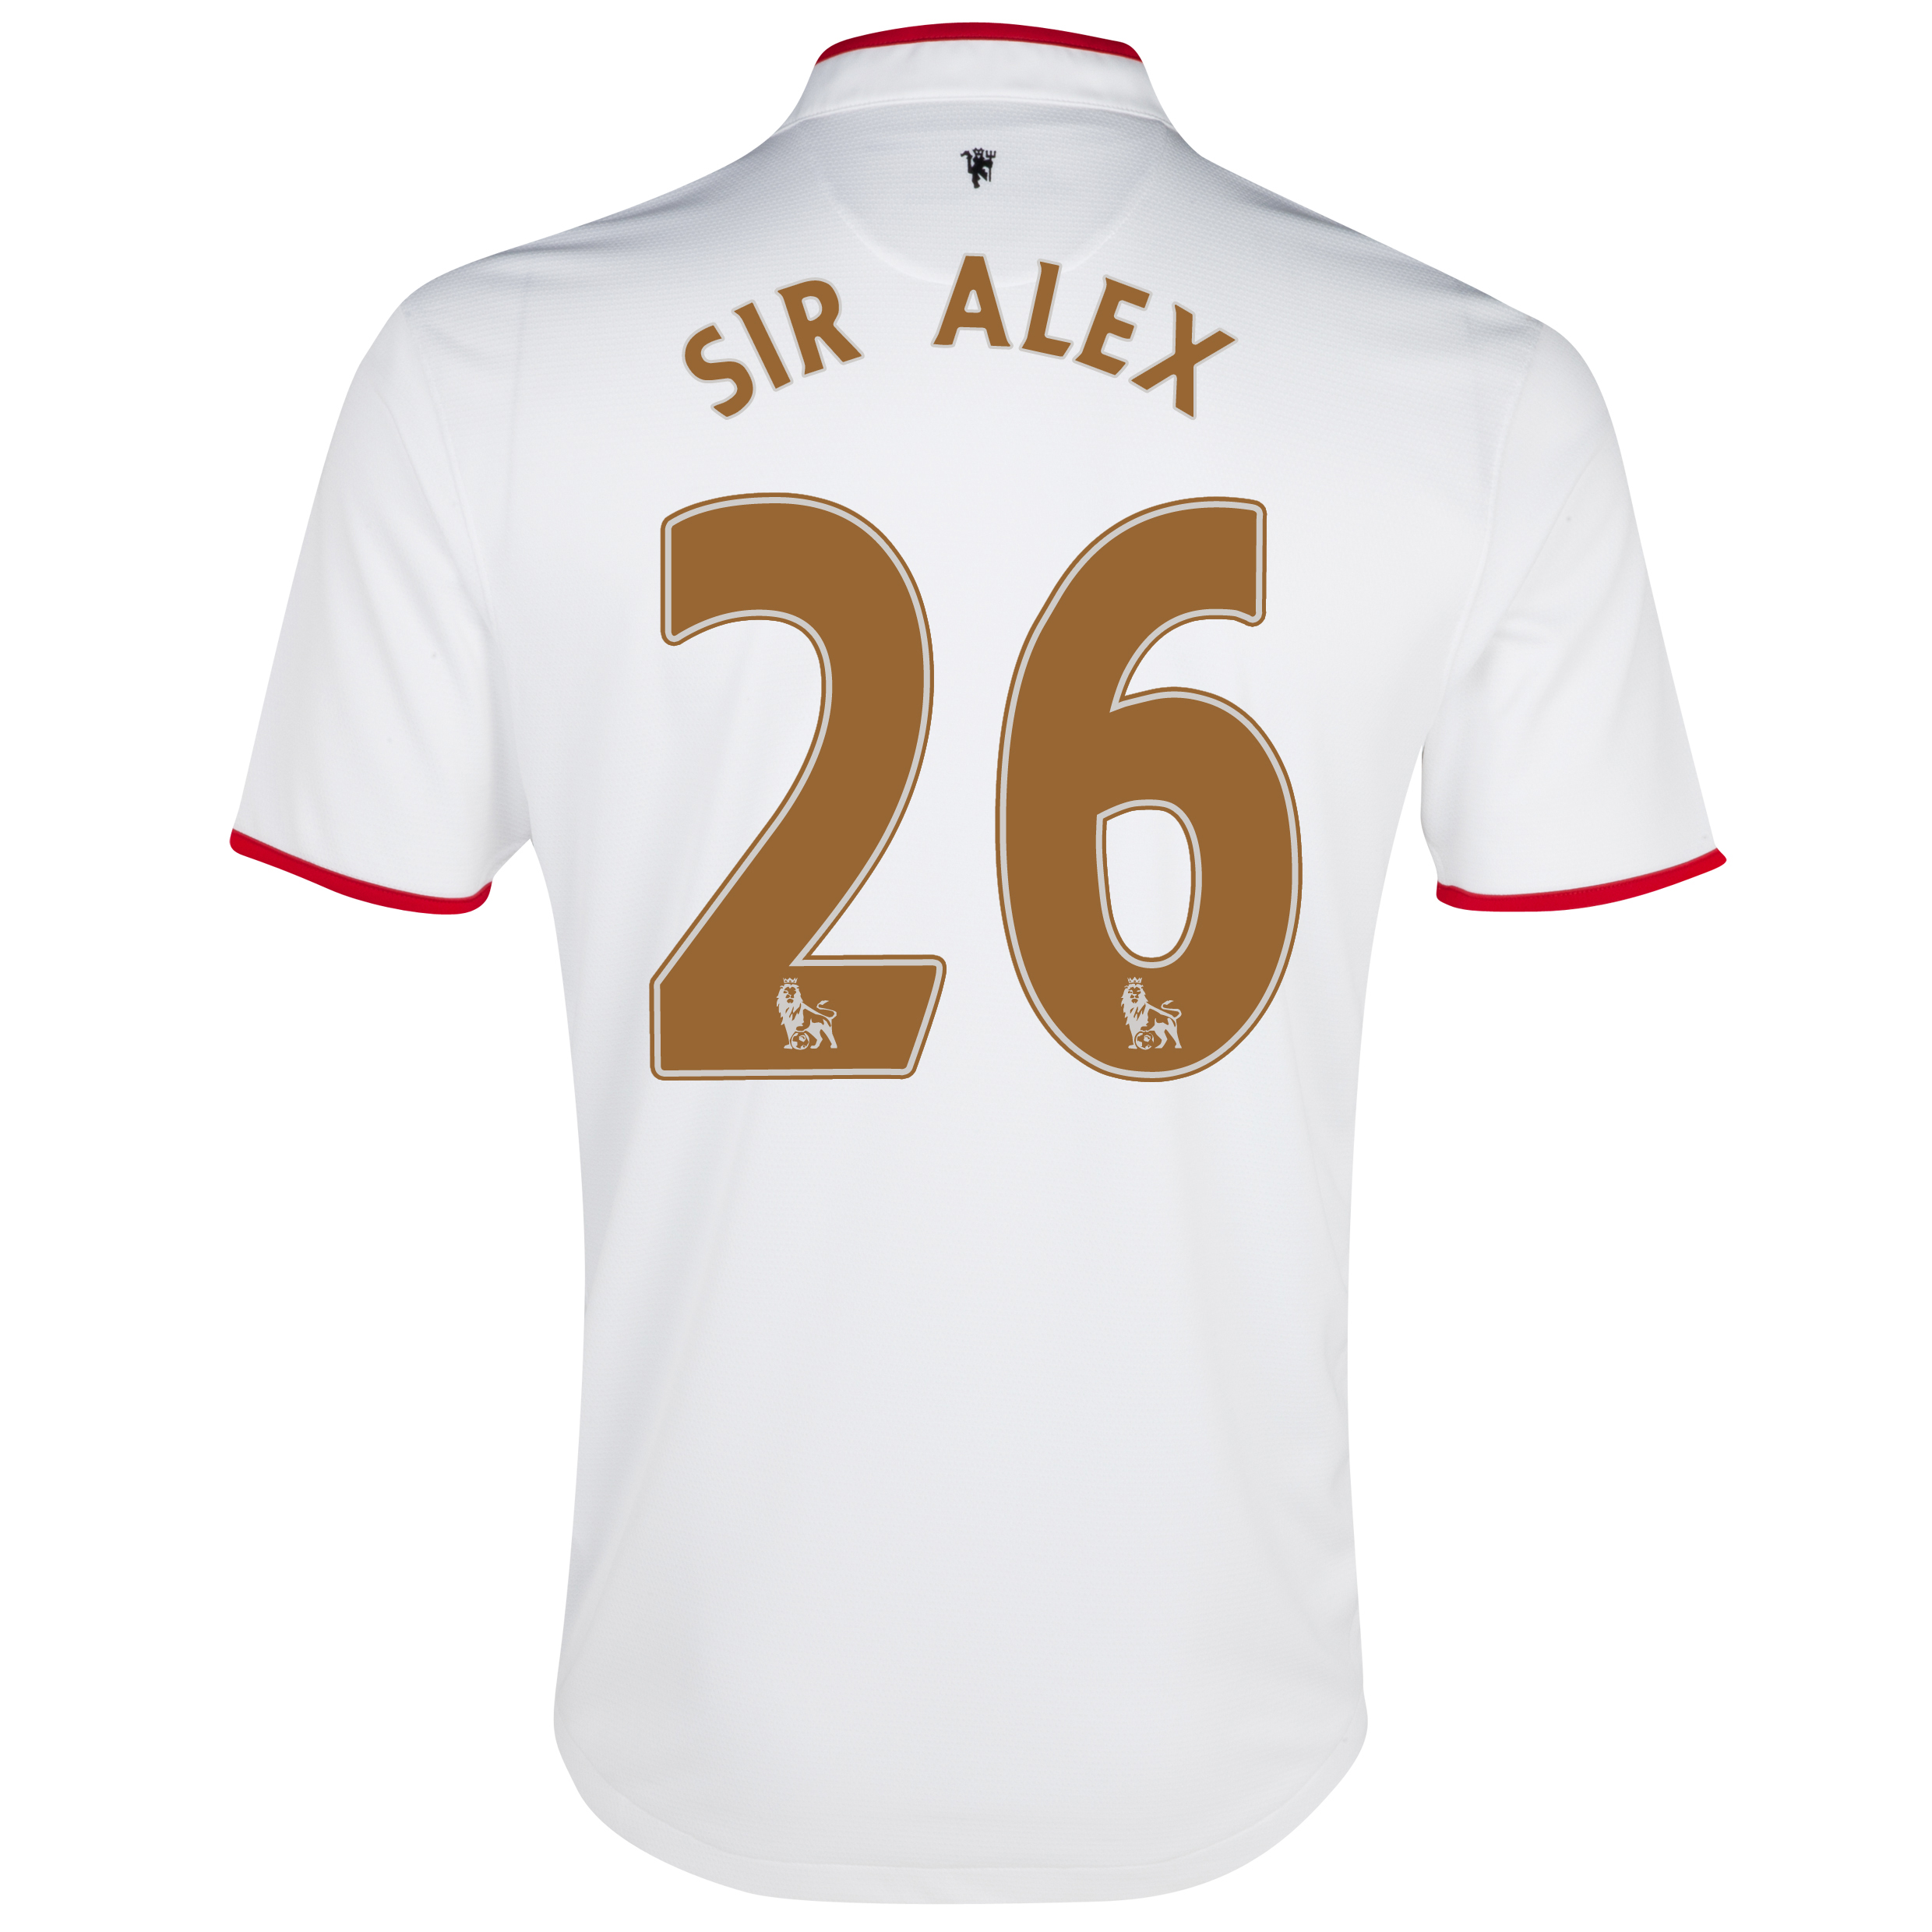 Manchester United Away Shirt 2012/13 with Sir Alex 26 printing